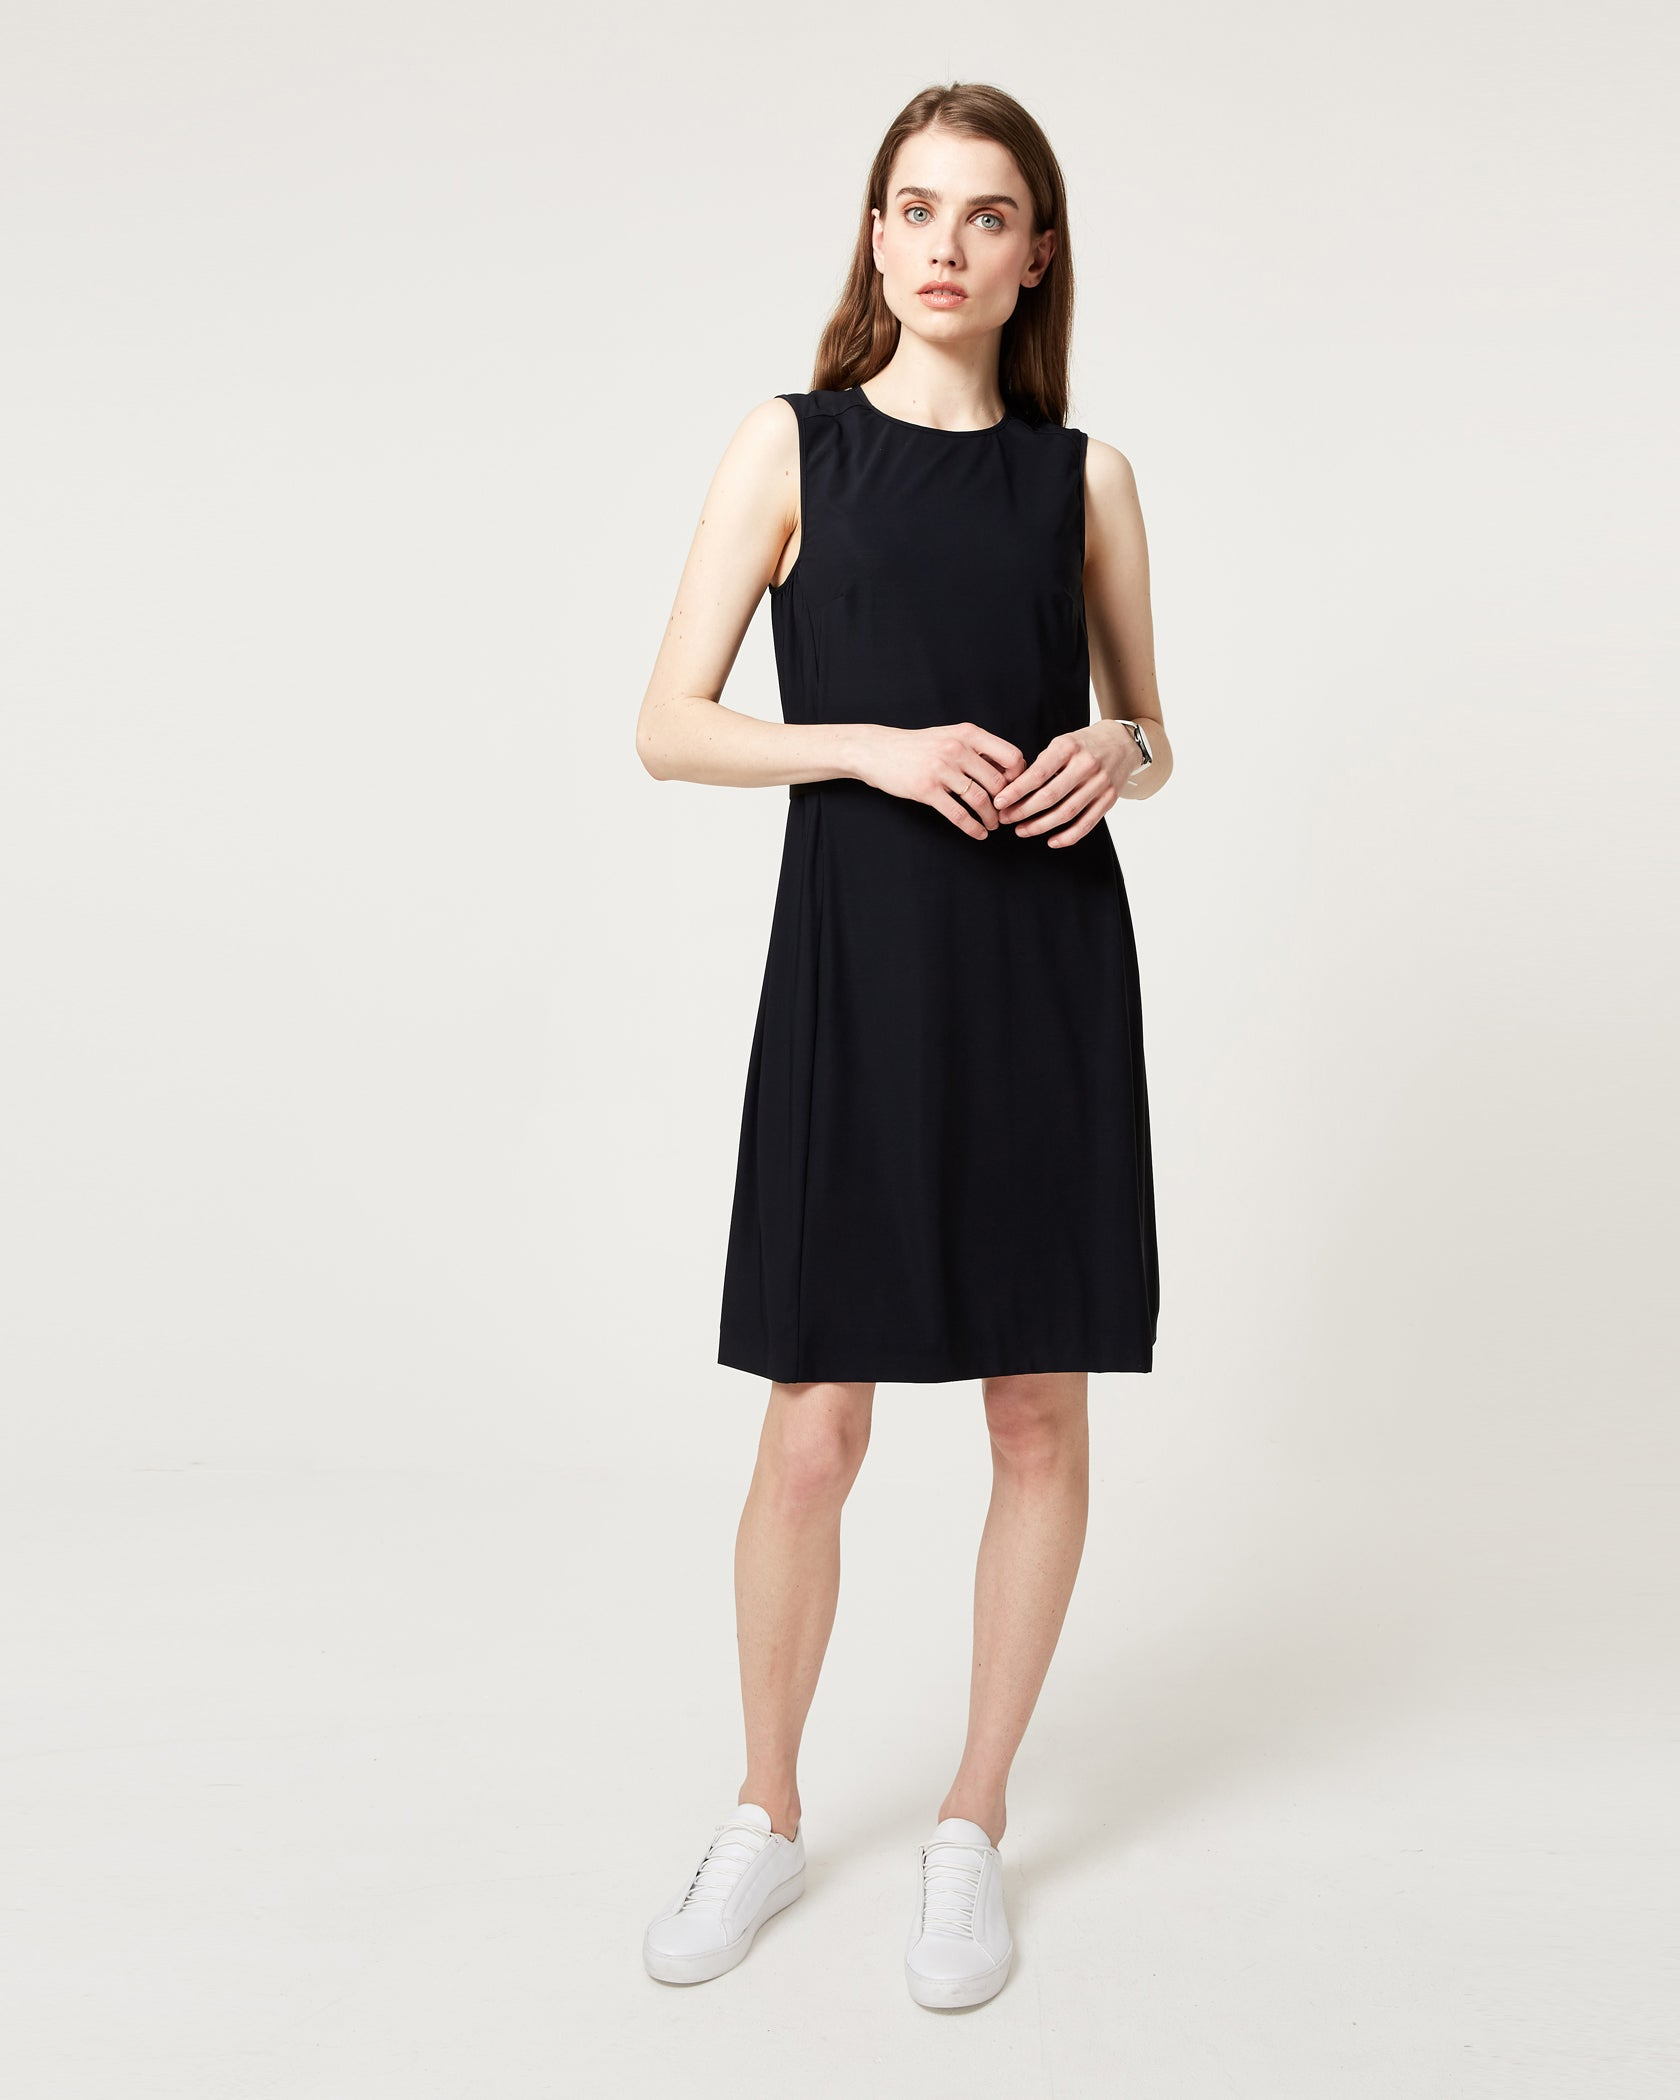 Sidebar Dress Black